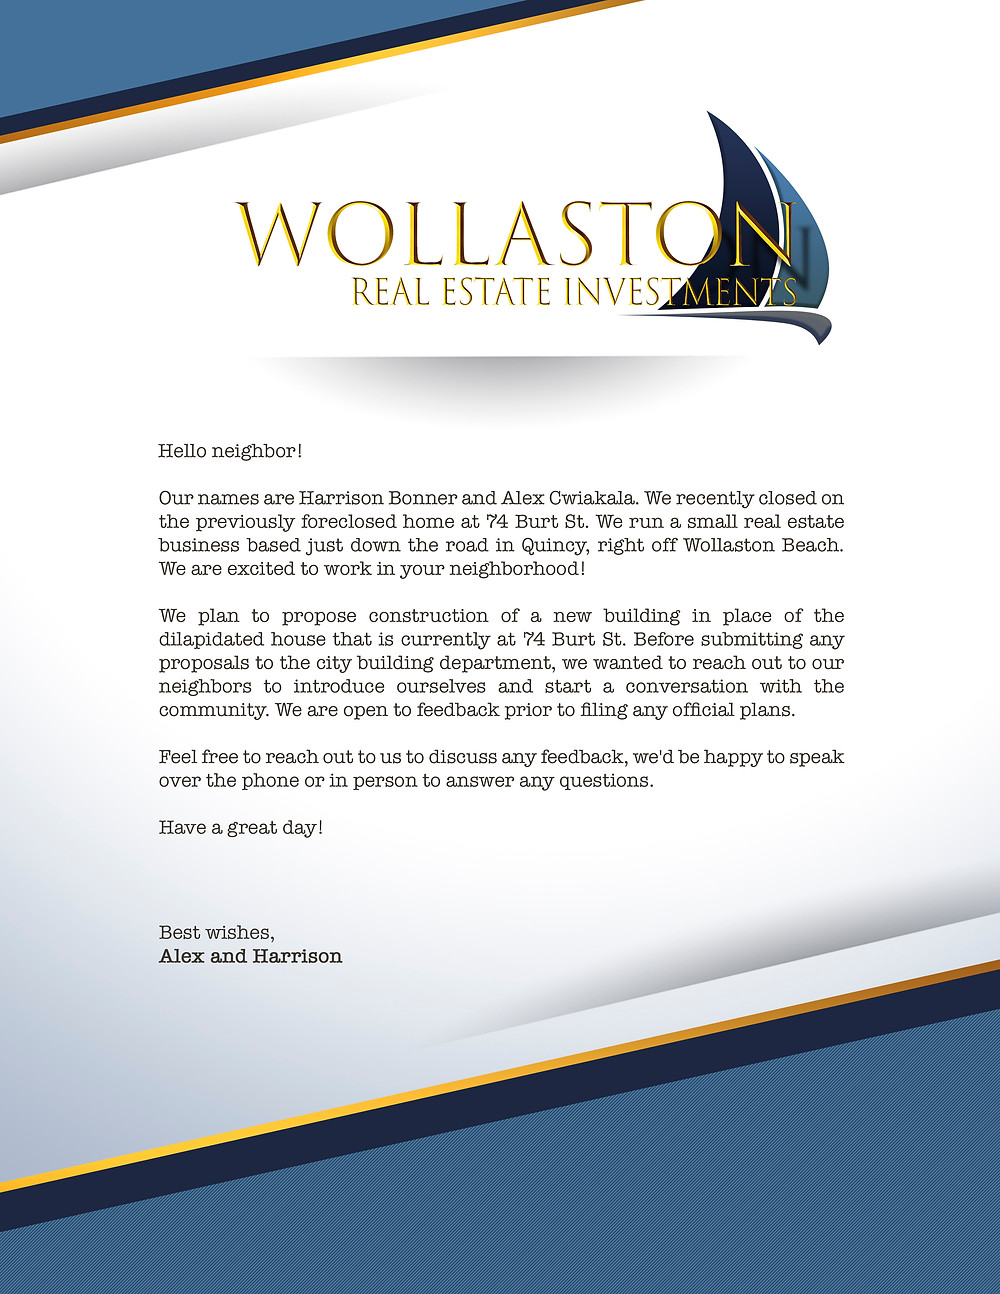 Wollaston Real Estate Investments